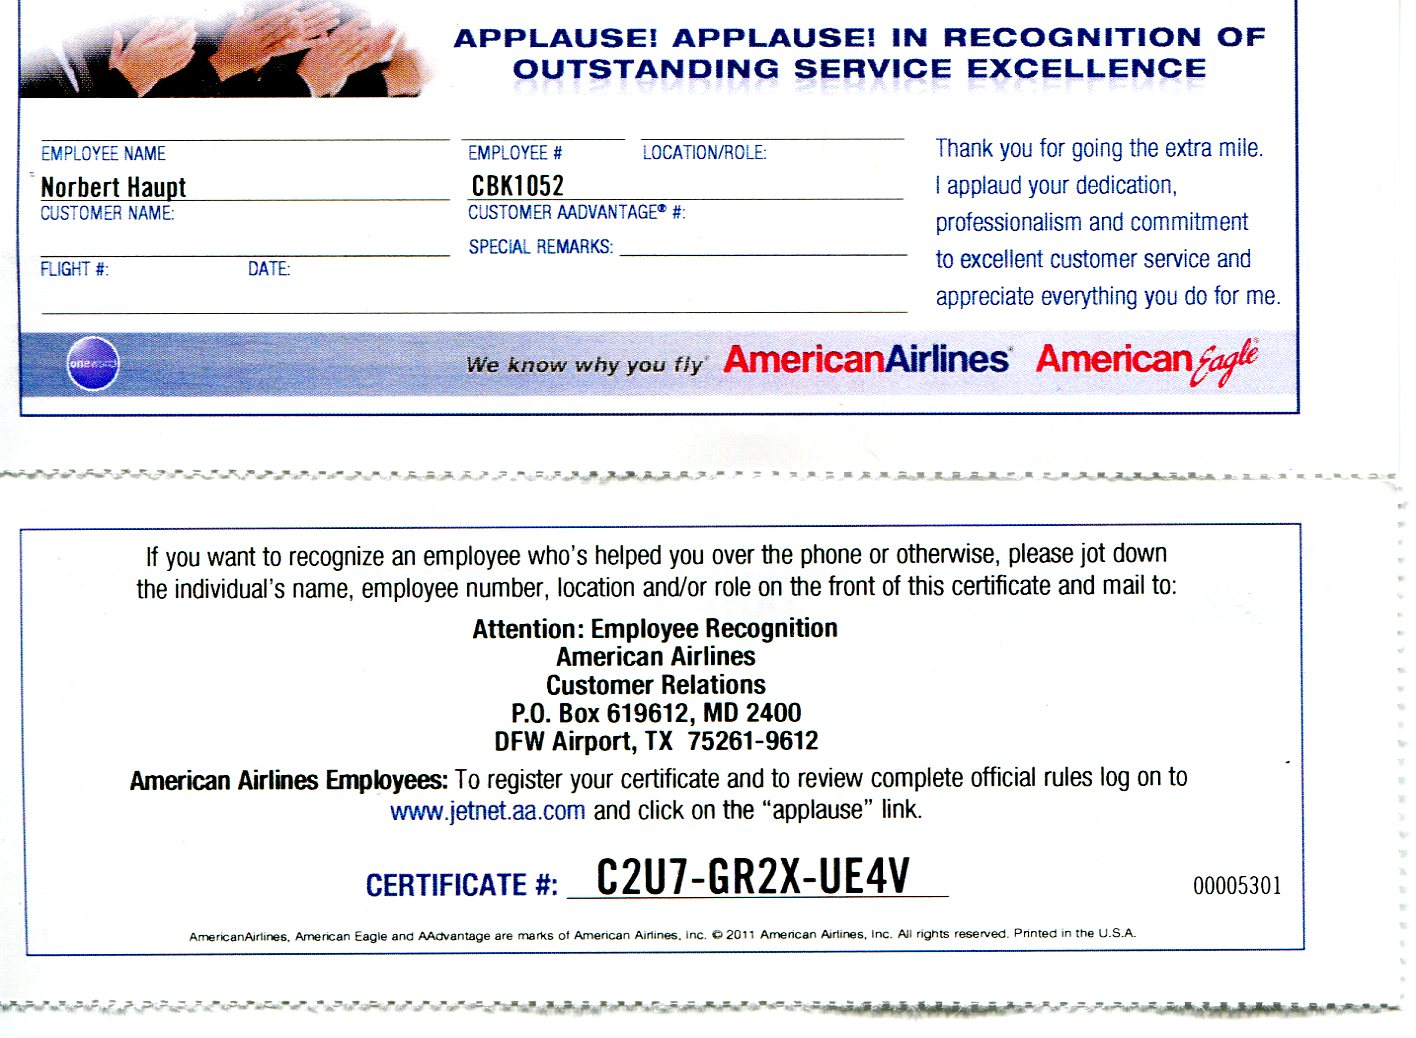 Discount coupons for airlines